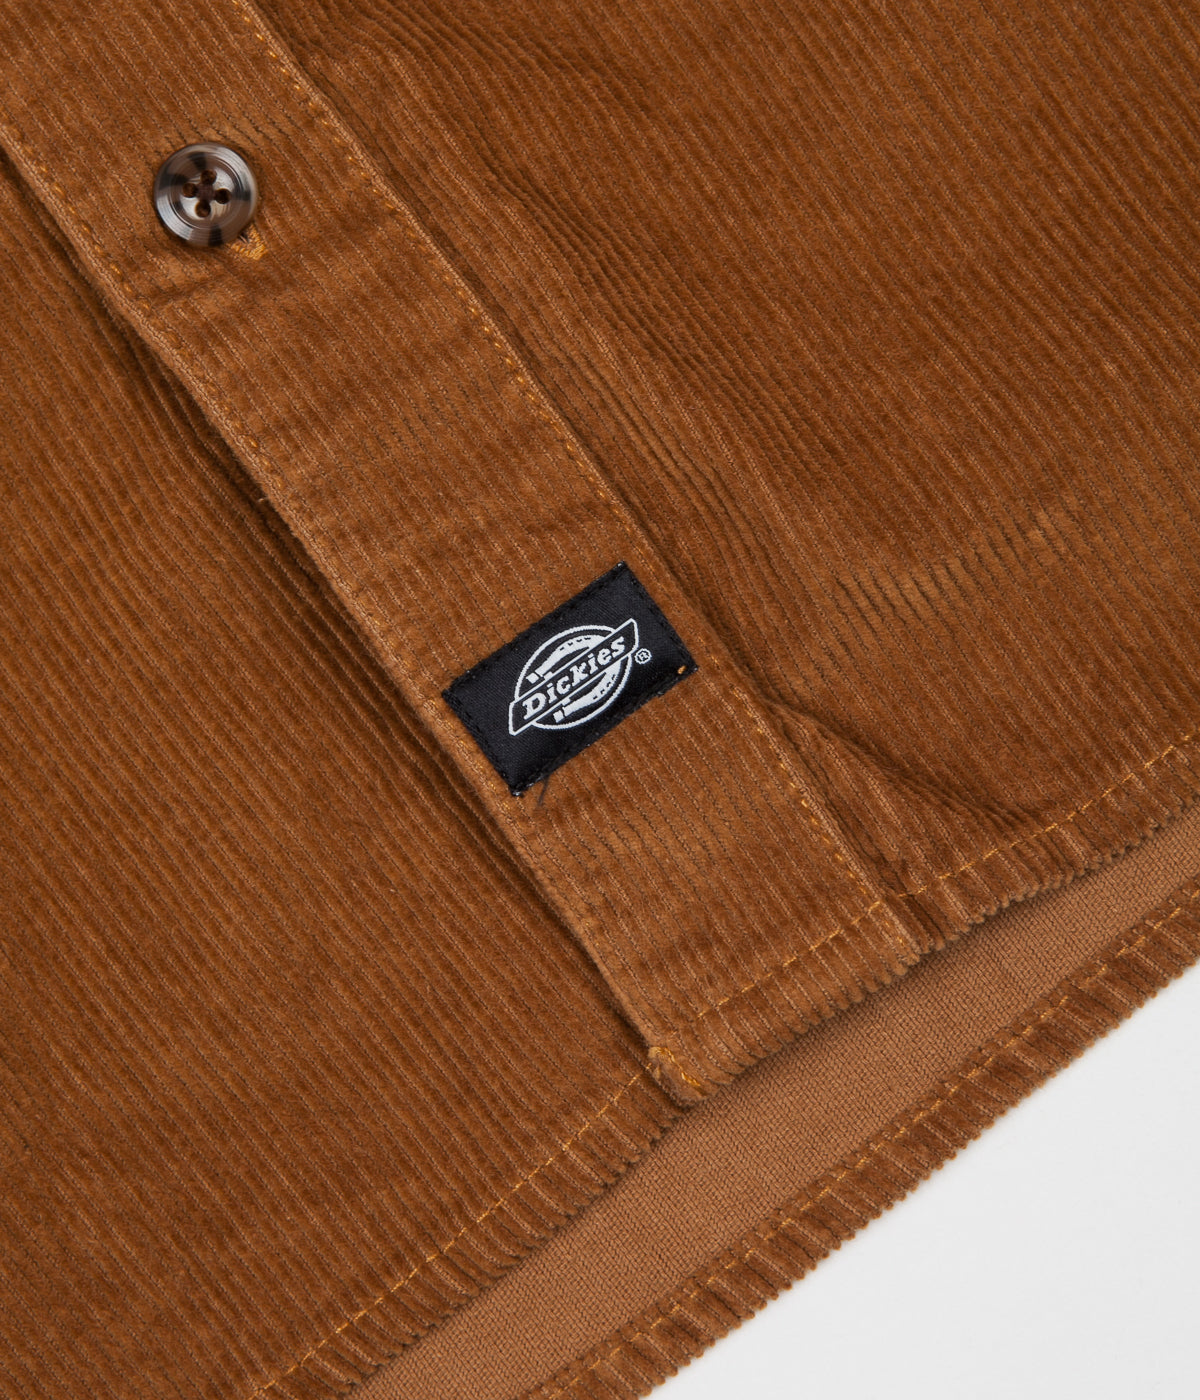 Dickies Arthurdale Shirt - Brown Duck